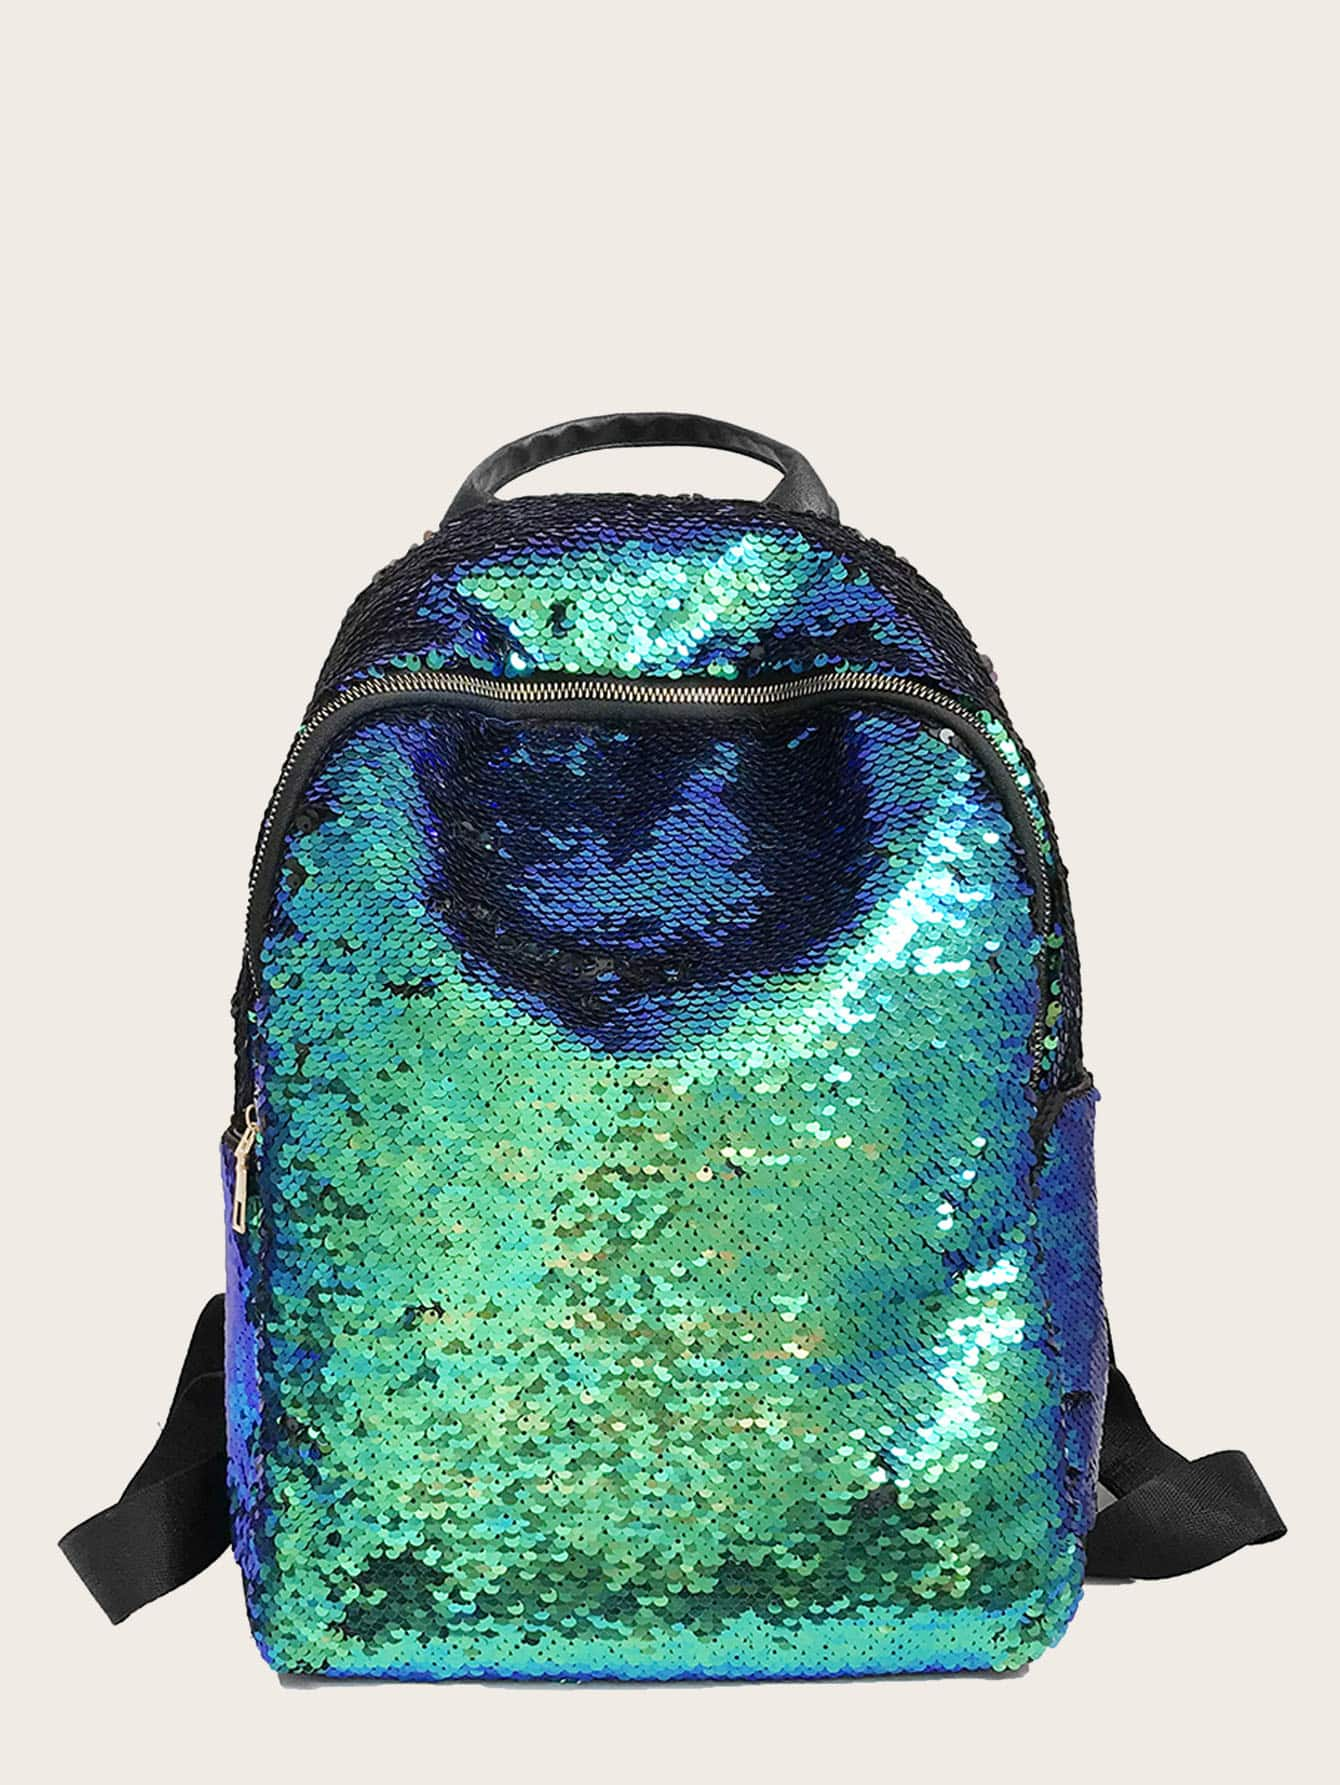 Contrast Sequins Decor Backpack null